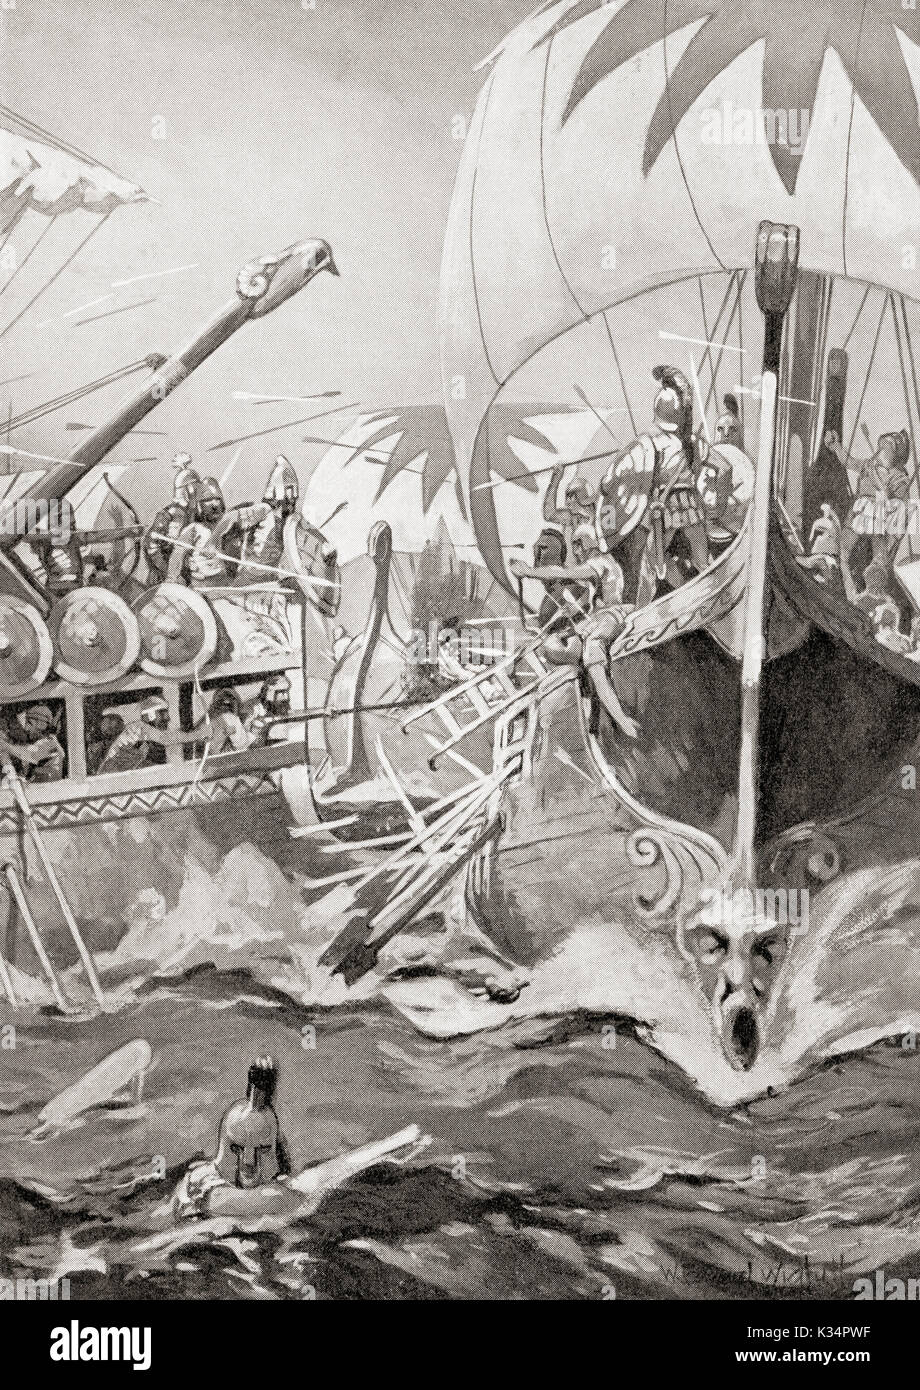 The defeat of an Ionian fleet by the ships of the Assyrian king Sennacherib, 696 BC.    From Hutchinson's History of the Nations, published 1915. - Stock Image